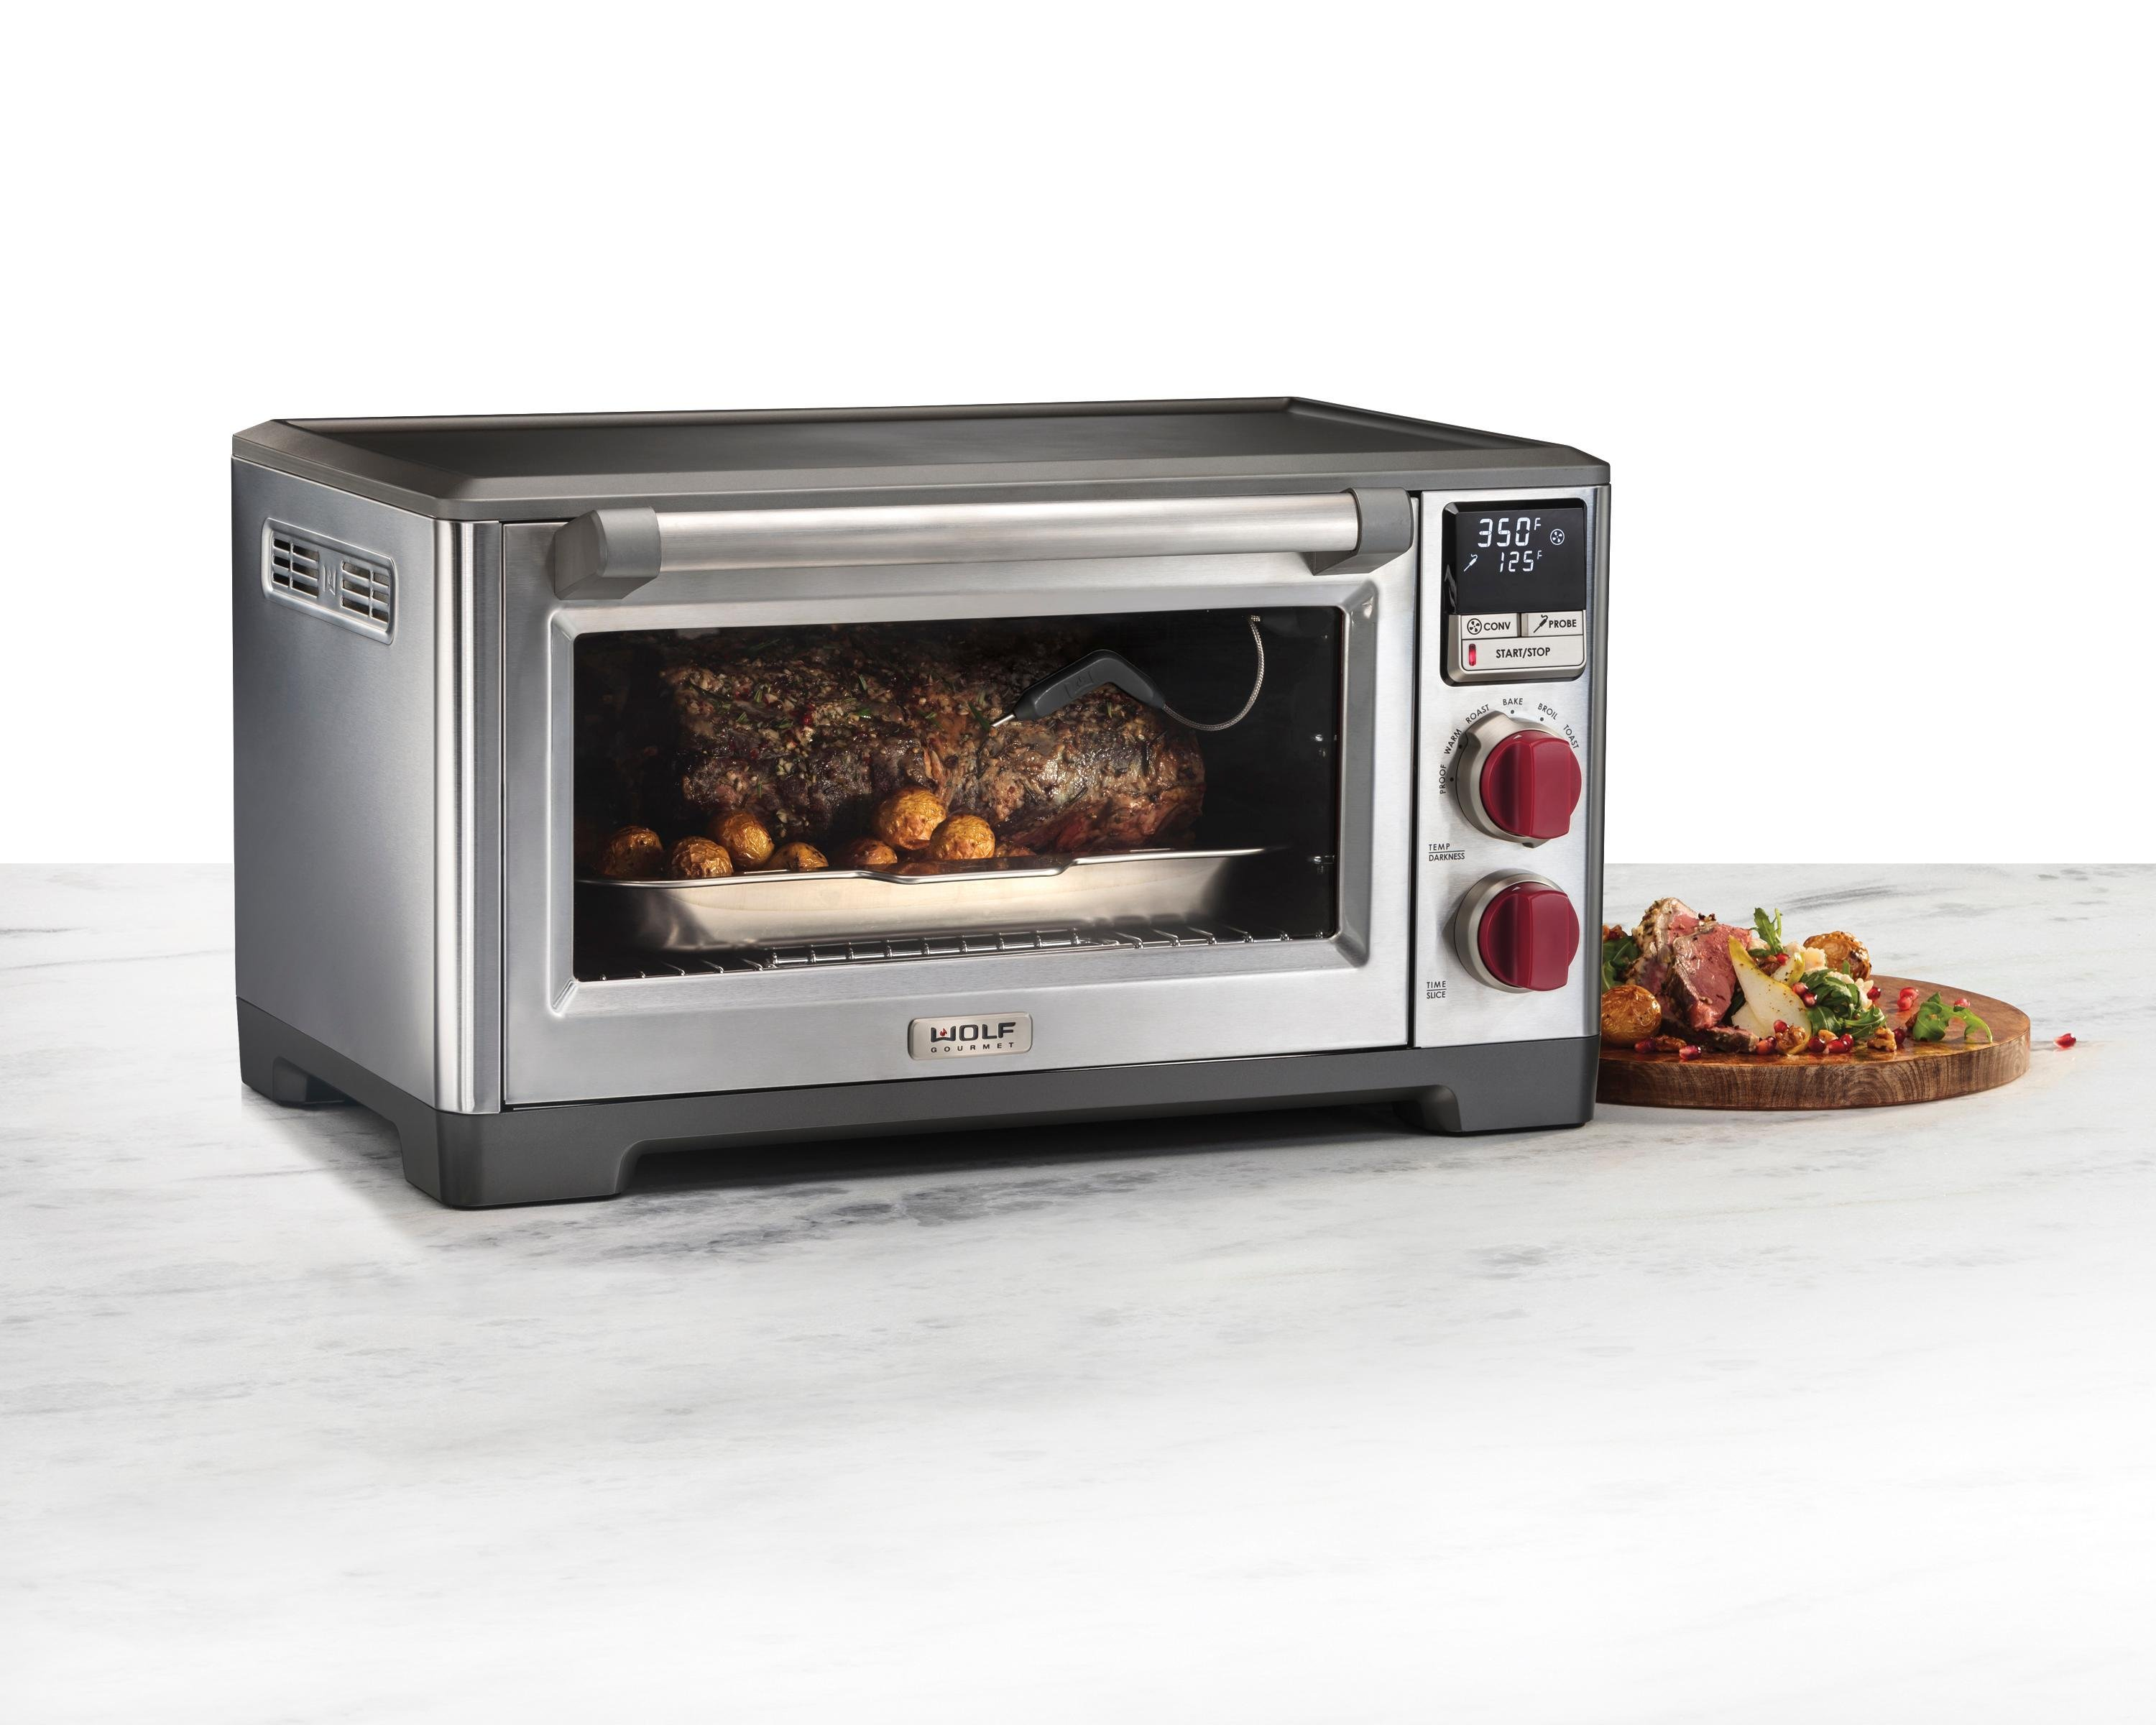 ... Gourmet WGCO100S Countertop Oven with Convection: Kitchen & Dining